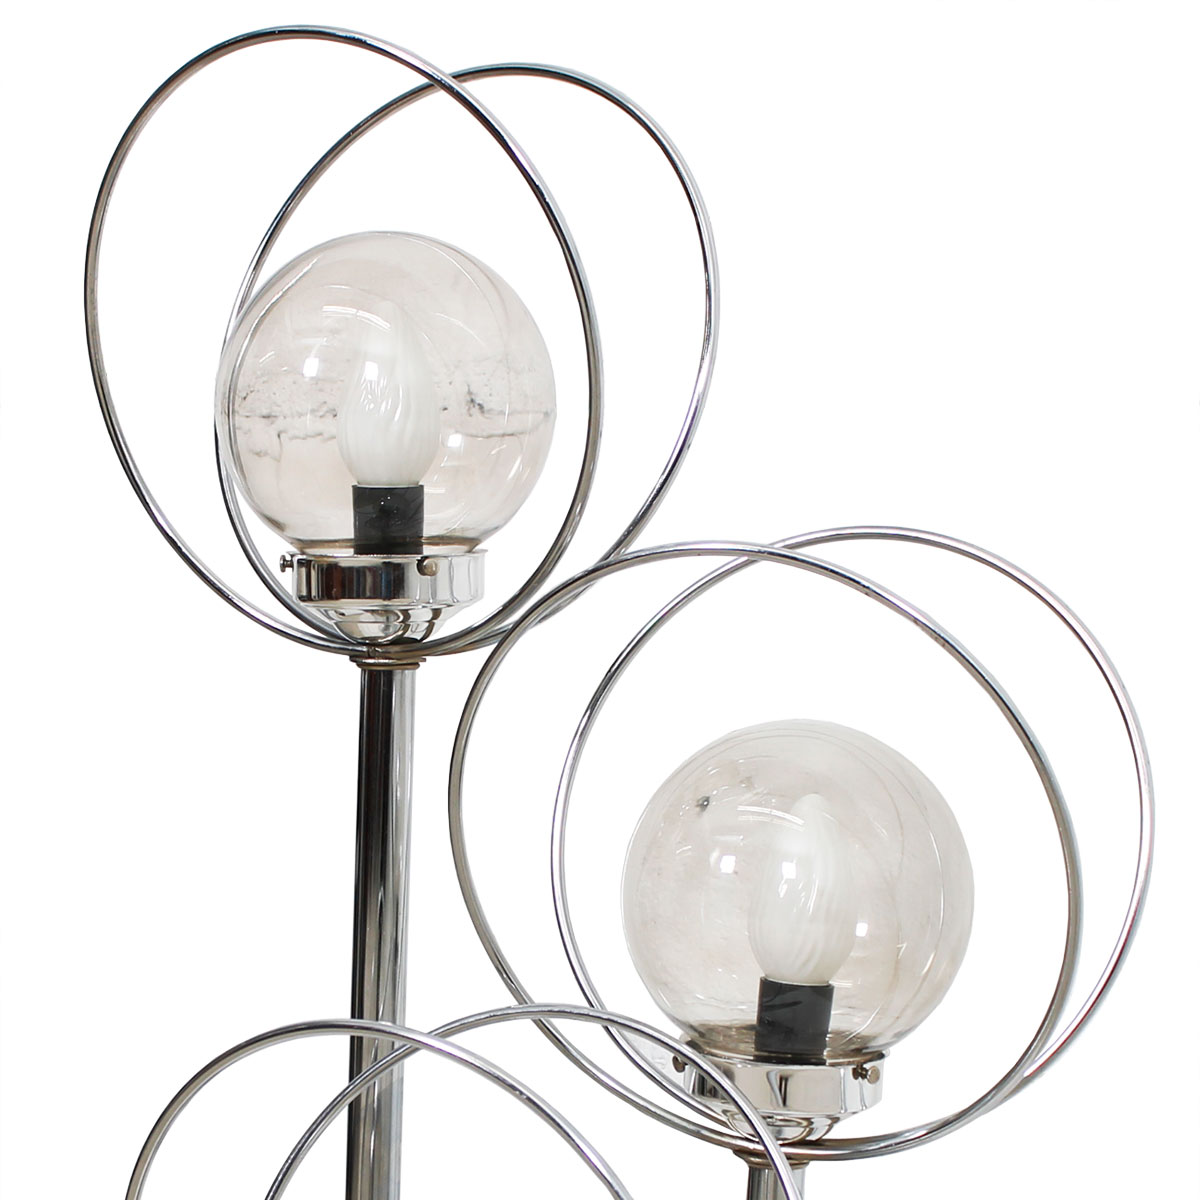 3-Tier Large Chrome Space Age Lamp w/ Orbs & Rings